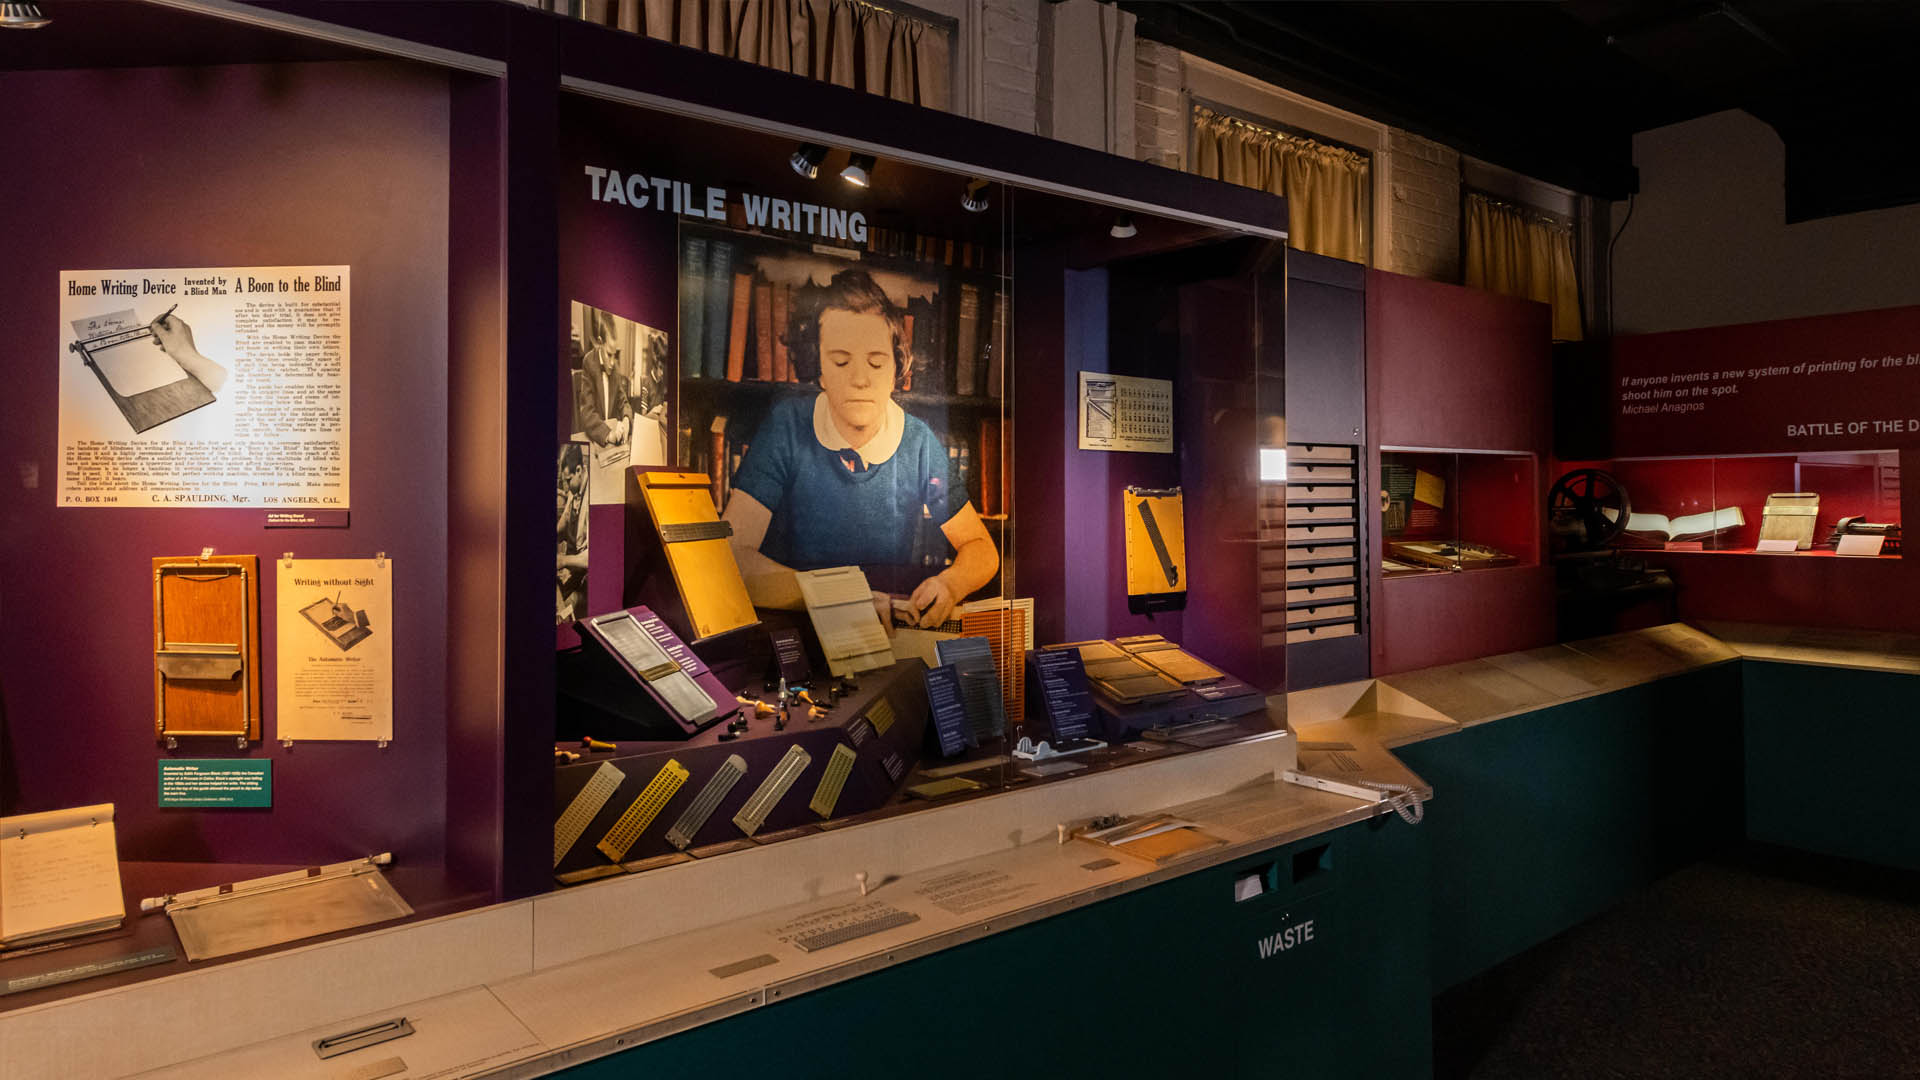 A museum exhibit featuring a case full of braille slates, a picture of a girl writing braille, and a reading rail with tools mounted to it